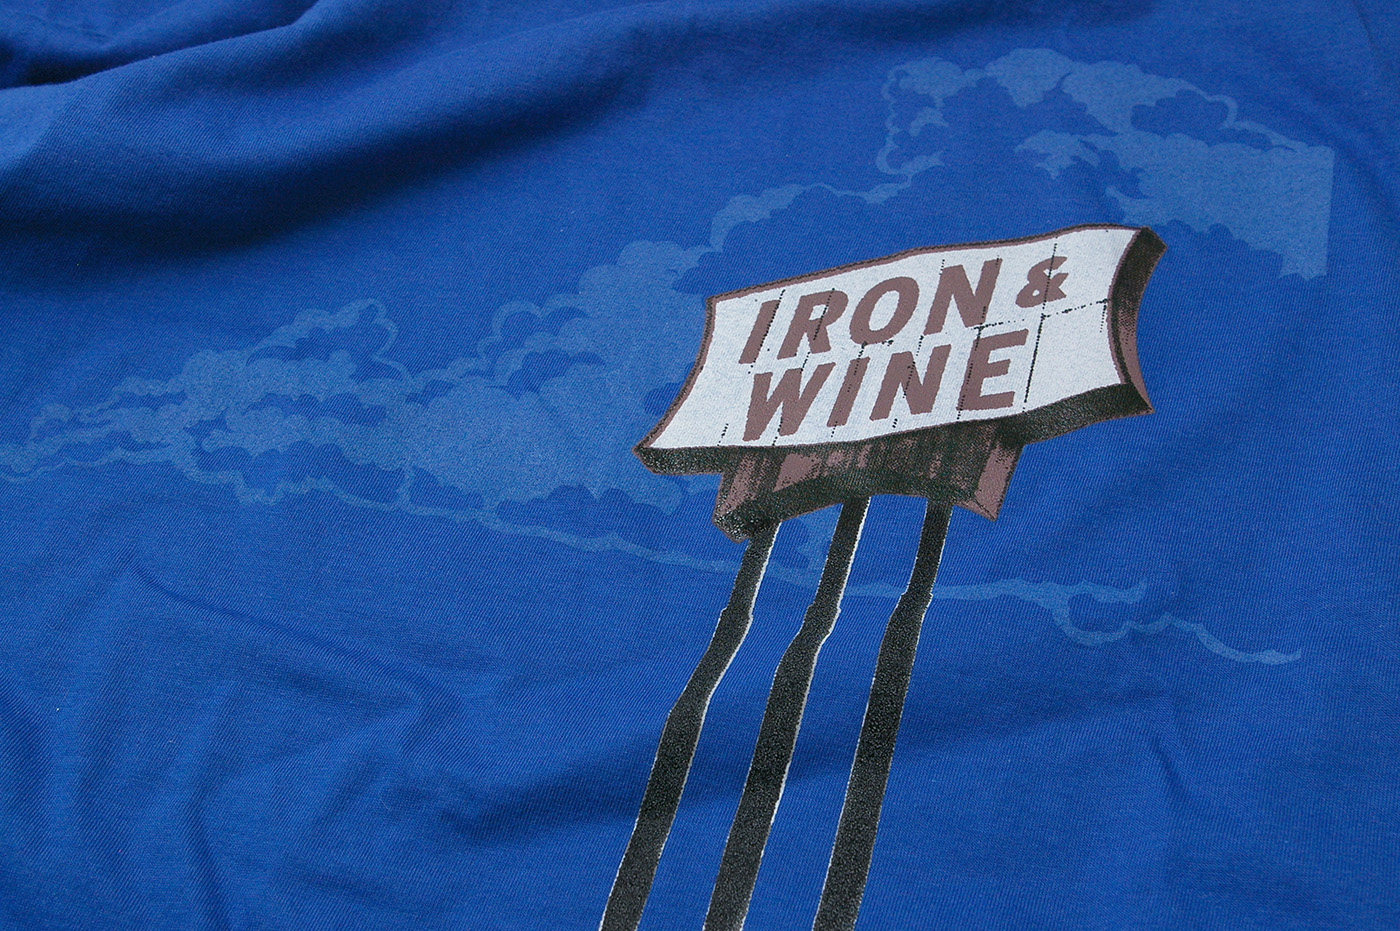 iron-and-wine-t-shirt-1